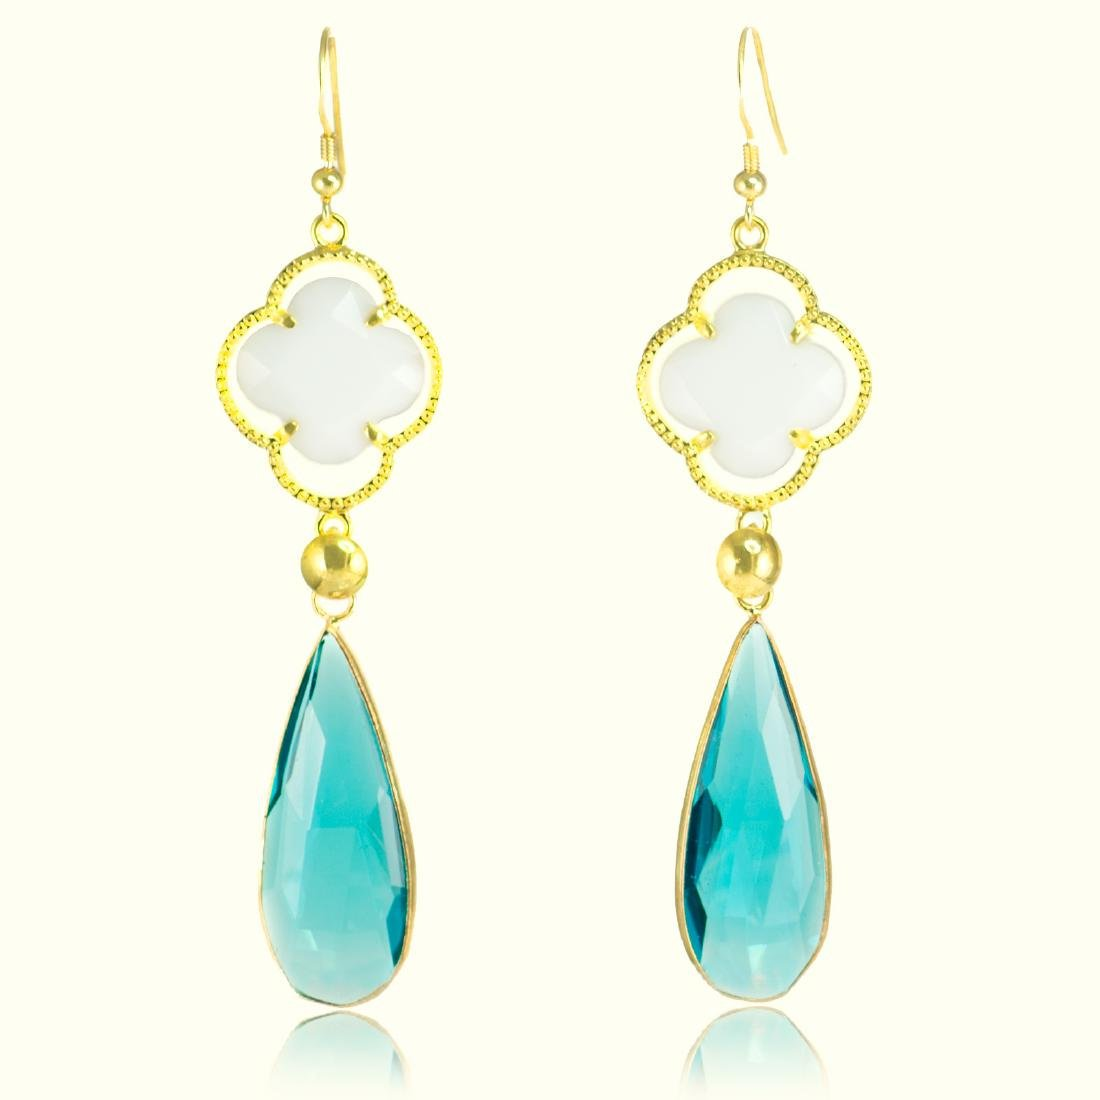 Long Drop Blue and White Earrings